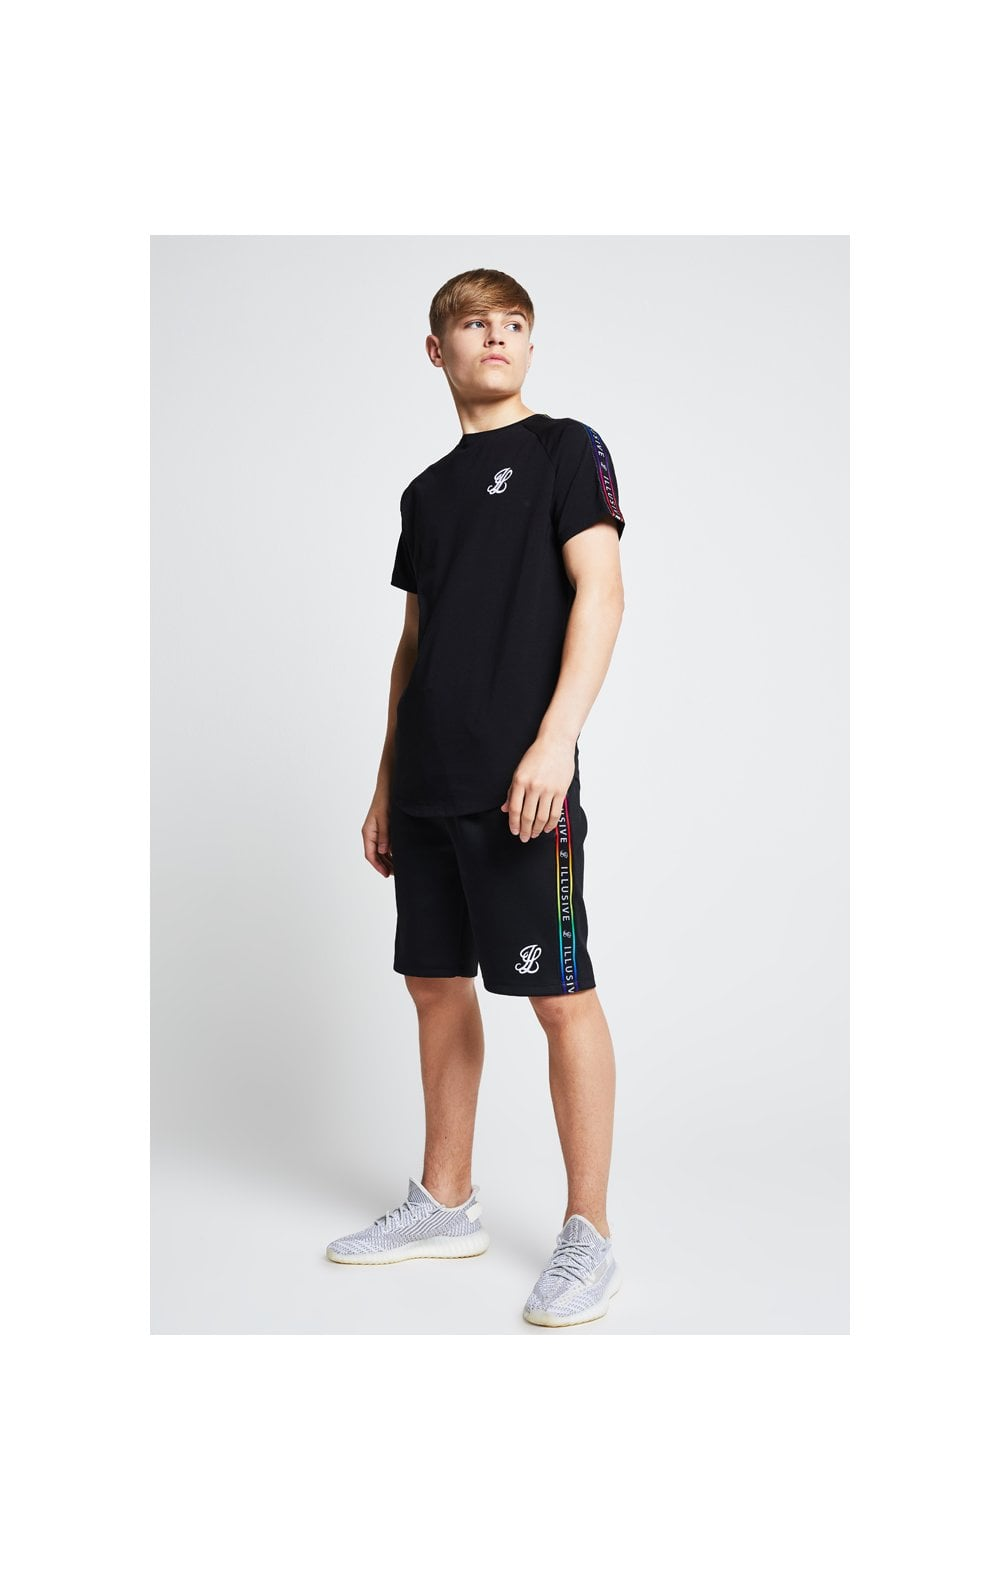 Illusive London Taped Raglan Tee - Black (4)